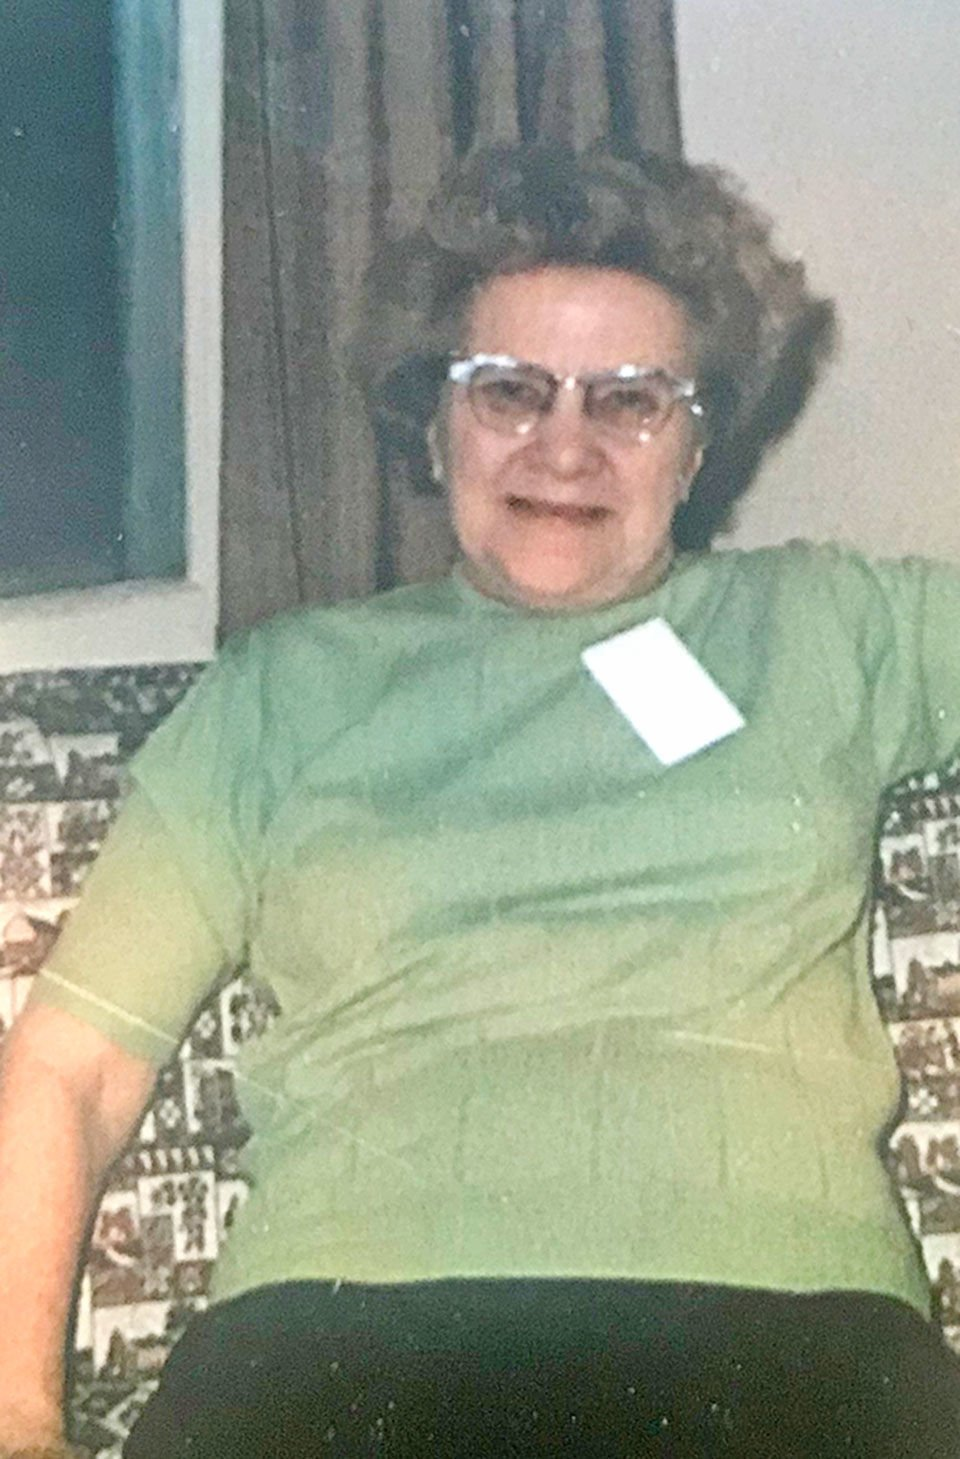 Missing cold case continues to haunt Little Falls woman